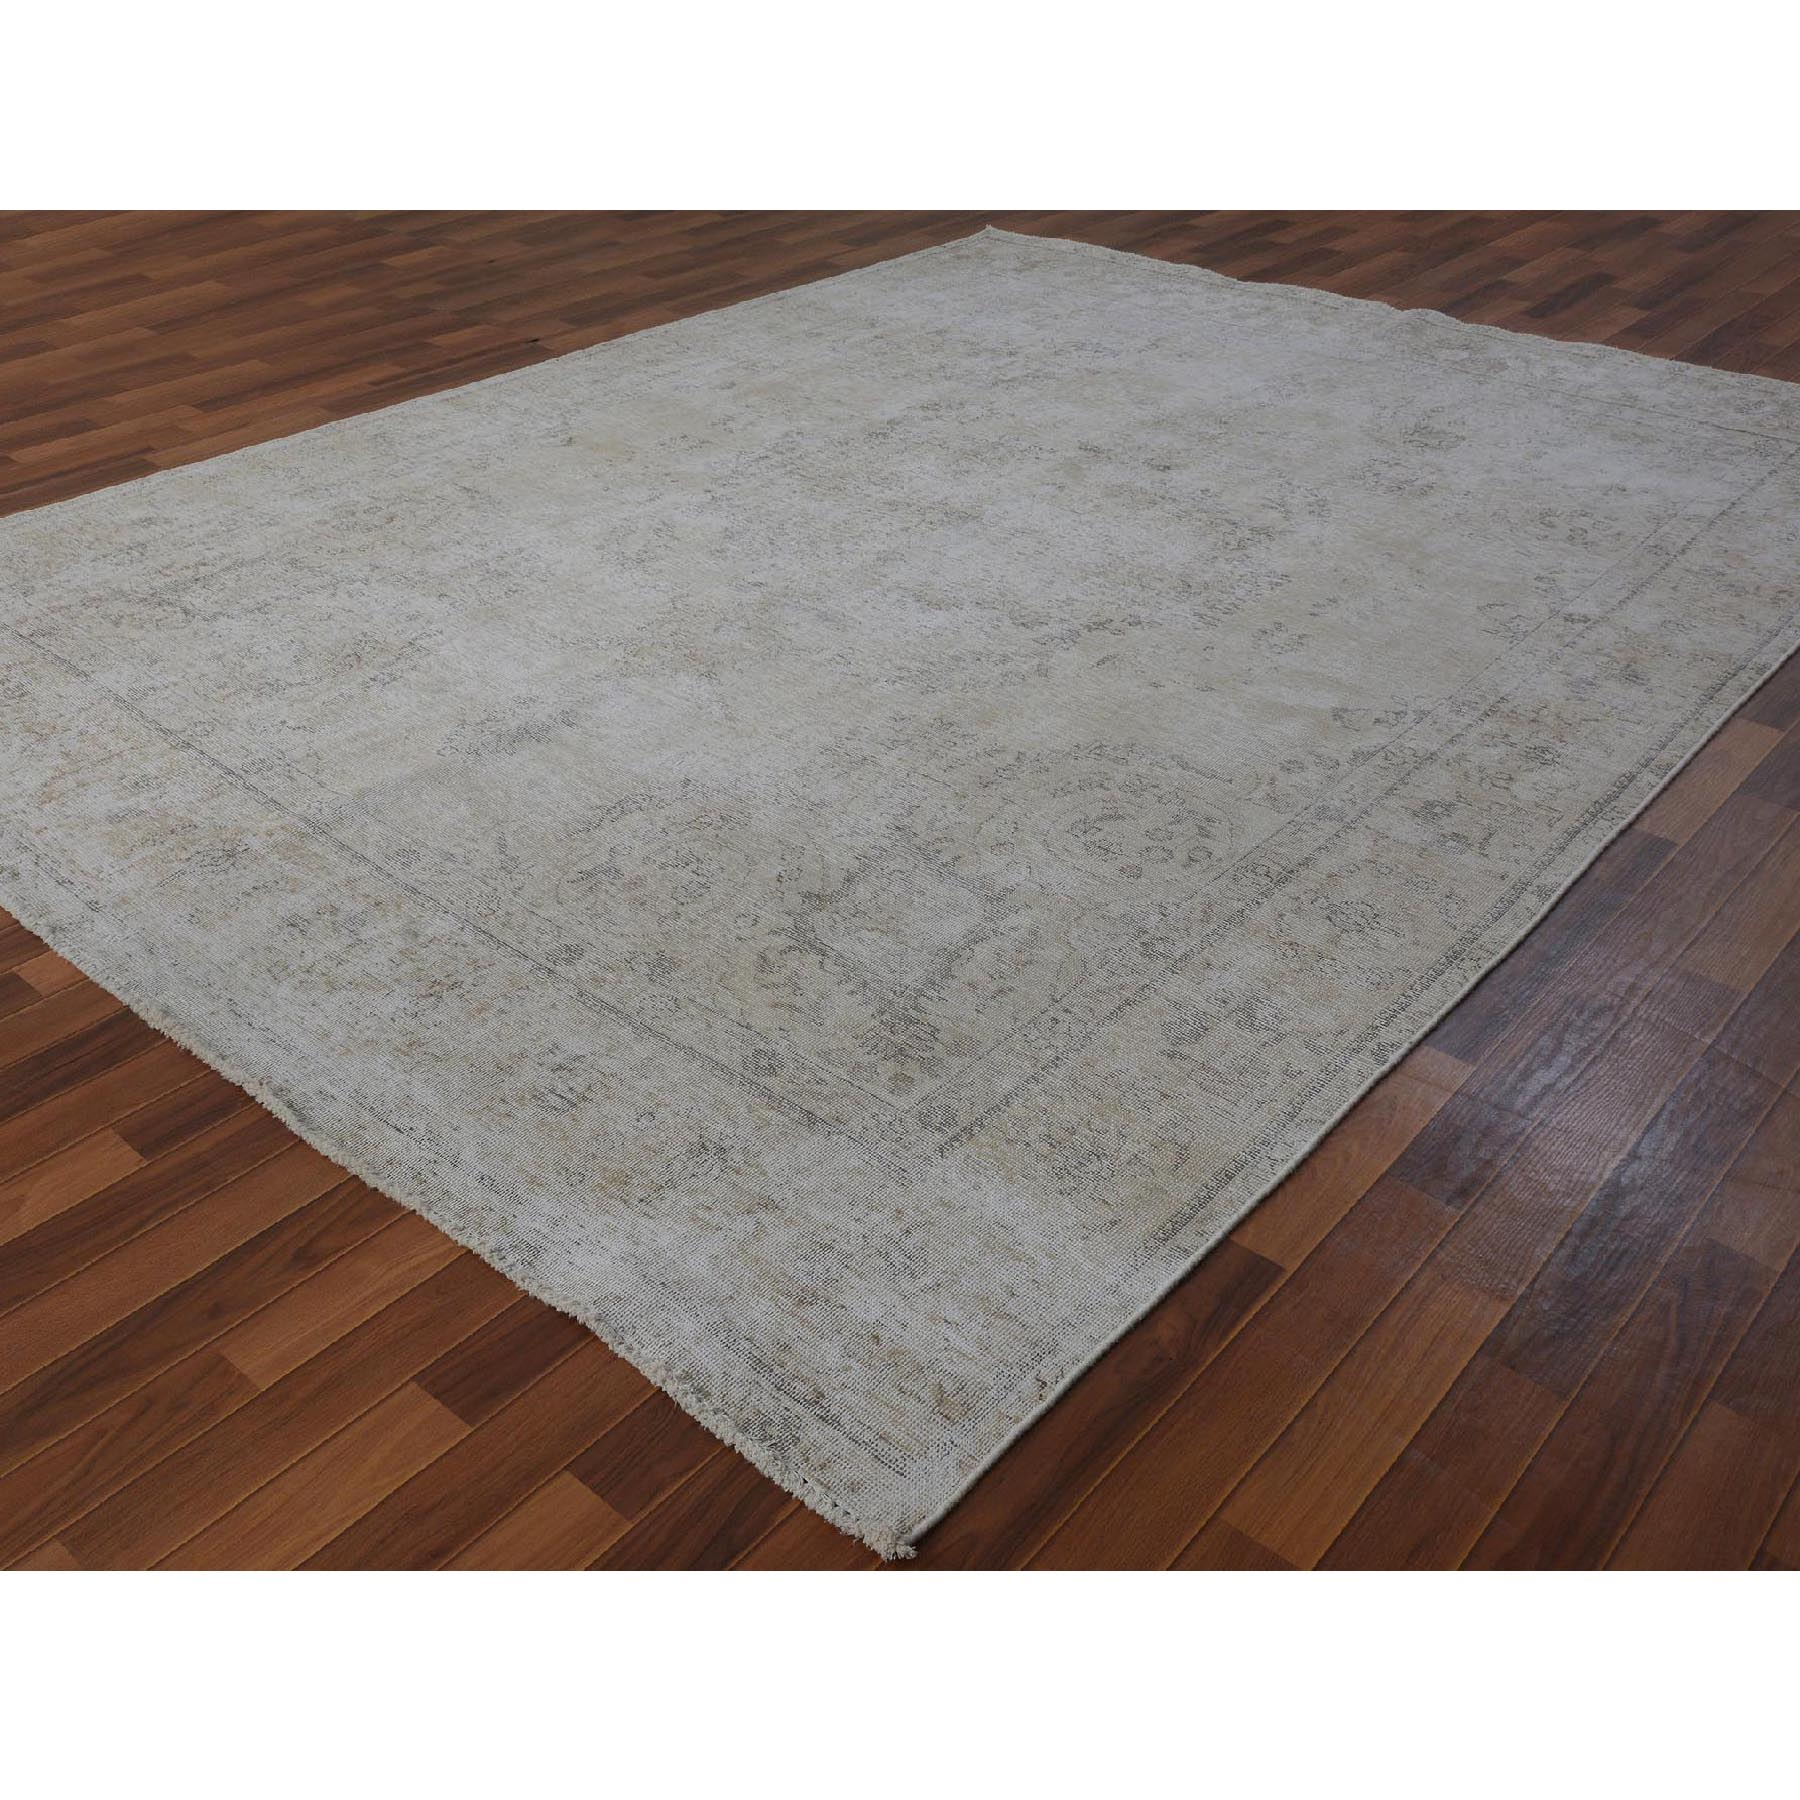 "9'4""x12'3"" Washed Out and Worn Down Vintage Persian Tabriz Pure Wool Hand Woven Oriental Rug"